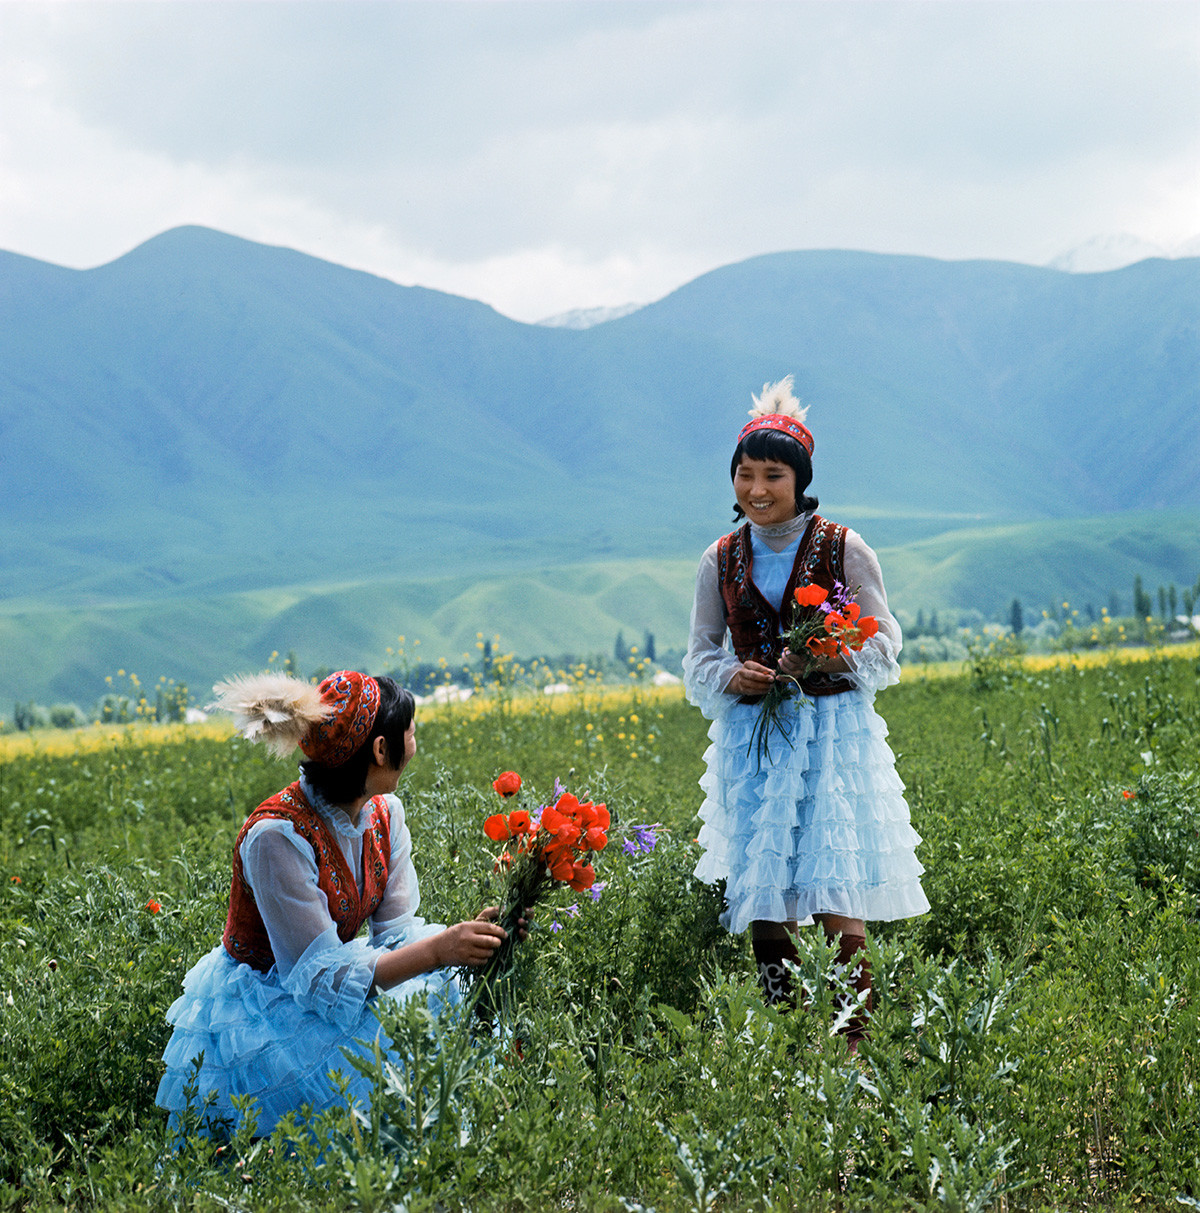 Kirghiz girls in traditional dresses